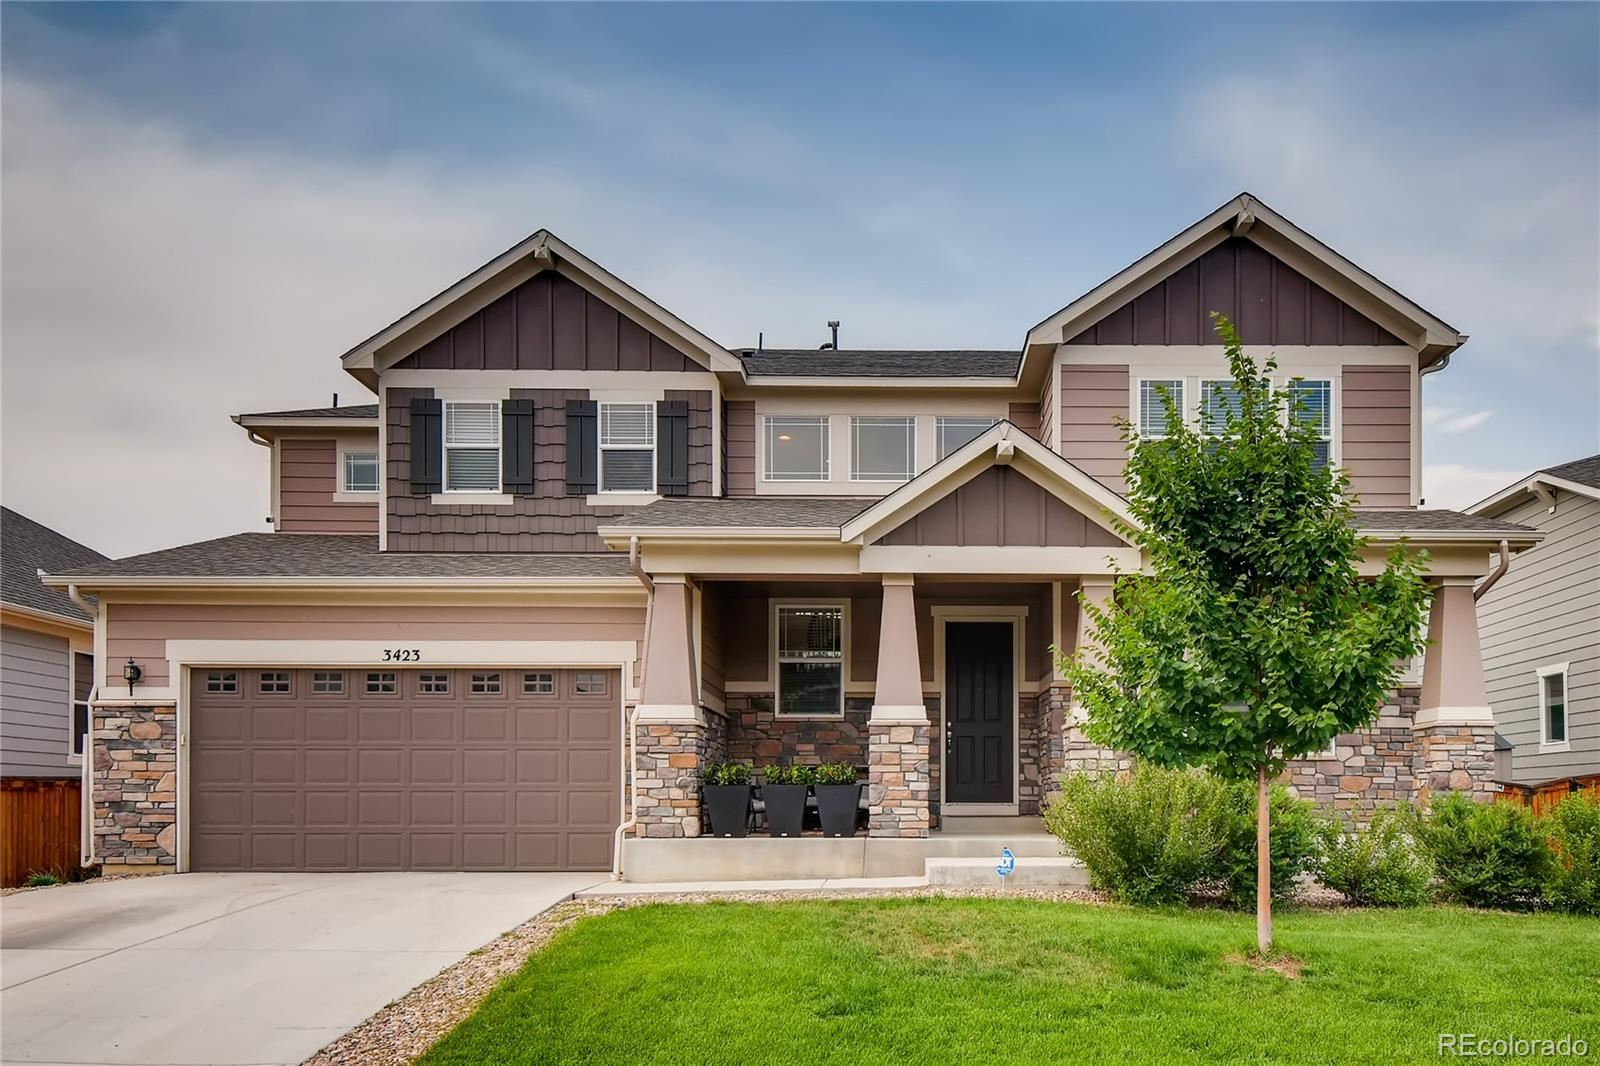 3423 E 143rd Place, Thornton, CO 80602 - #: 5981857